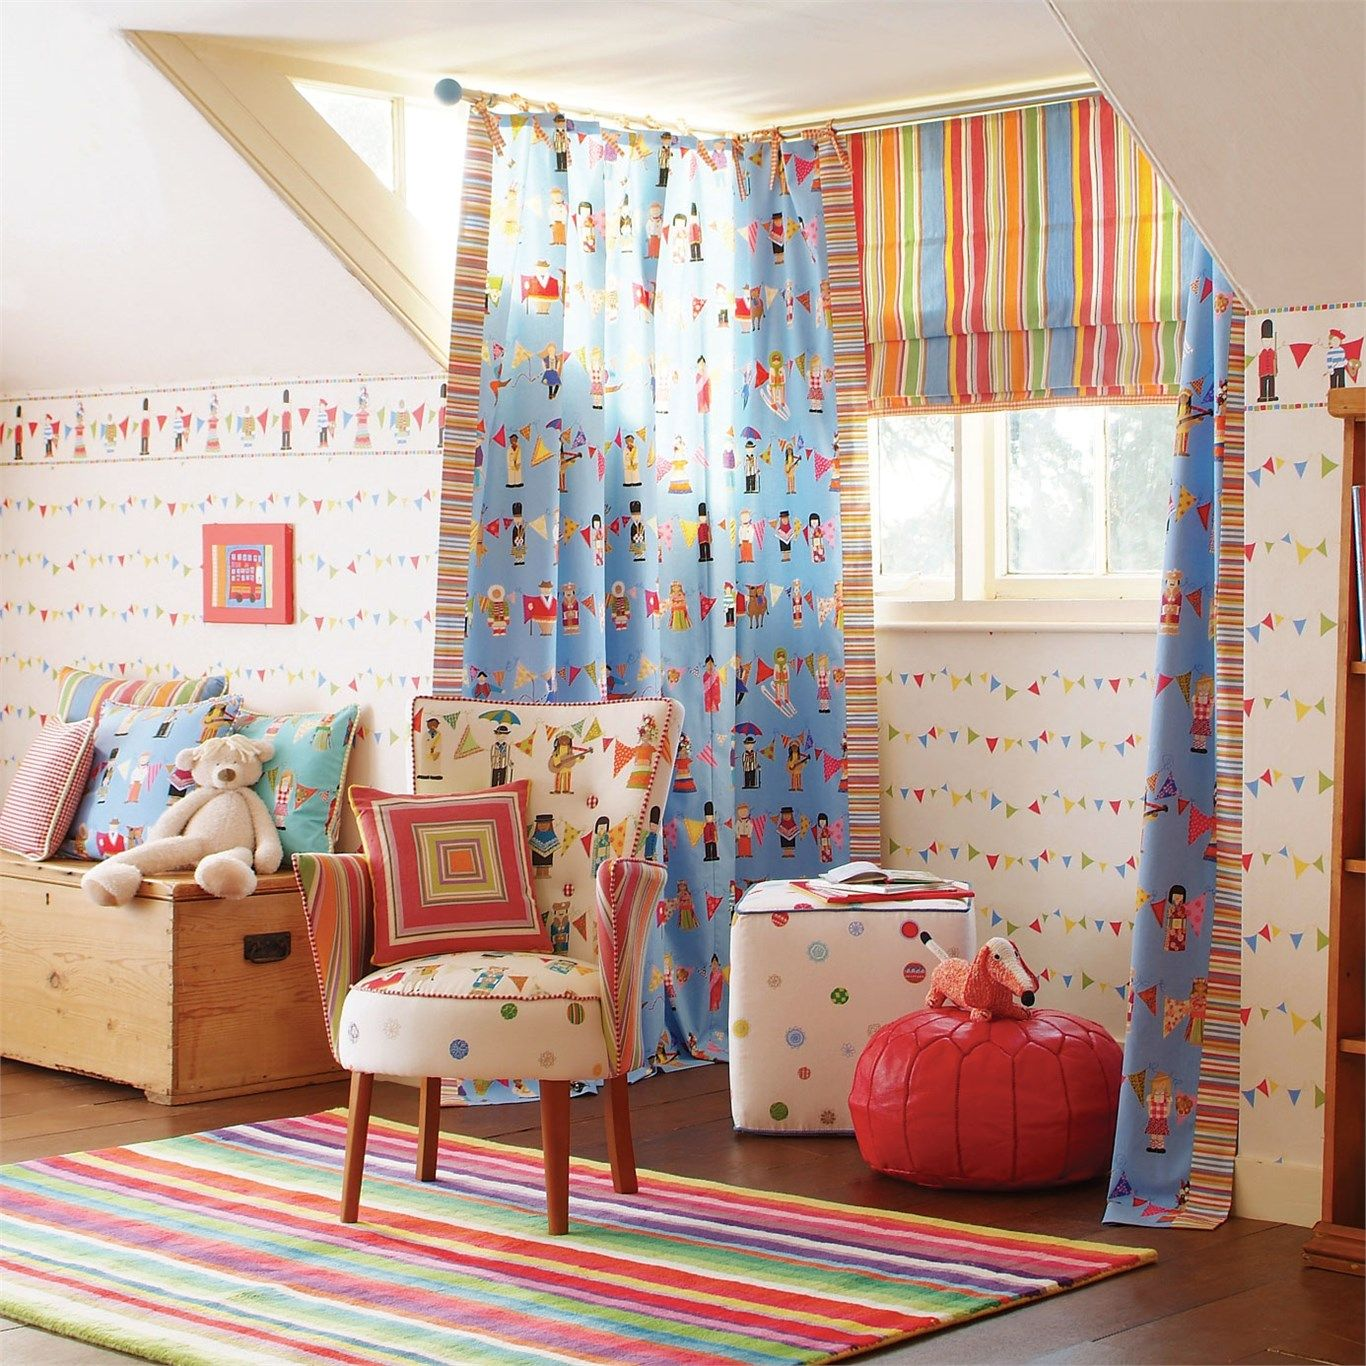 Products harlequin designer fabrics and wallpapers flagday